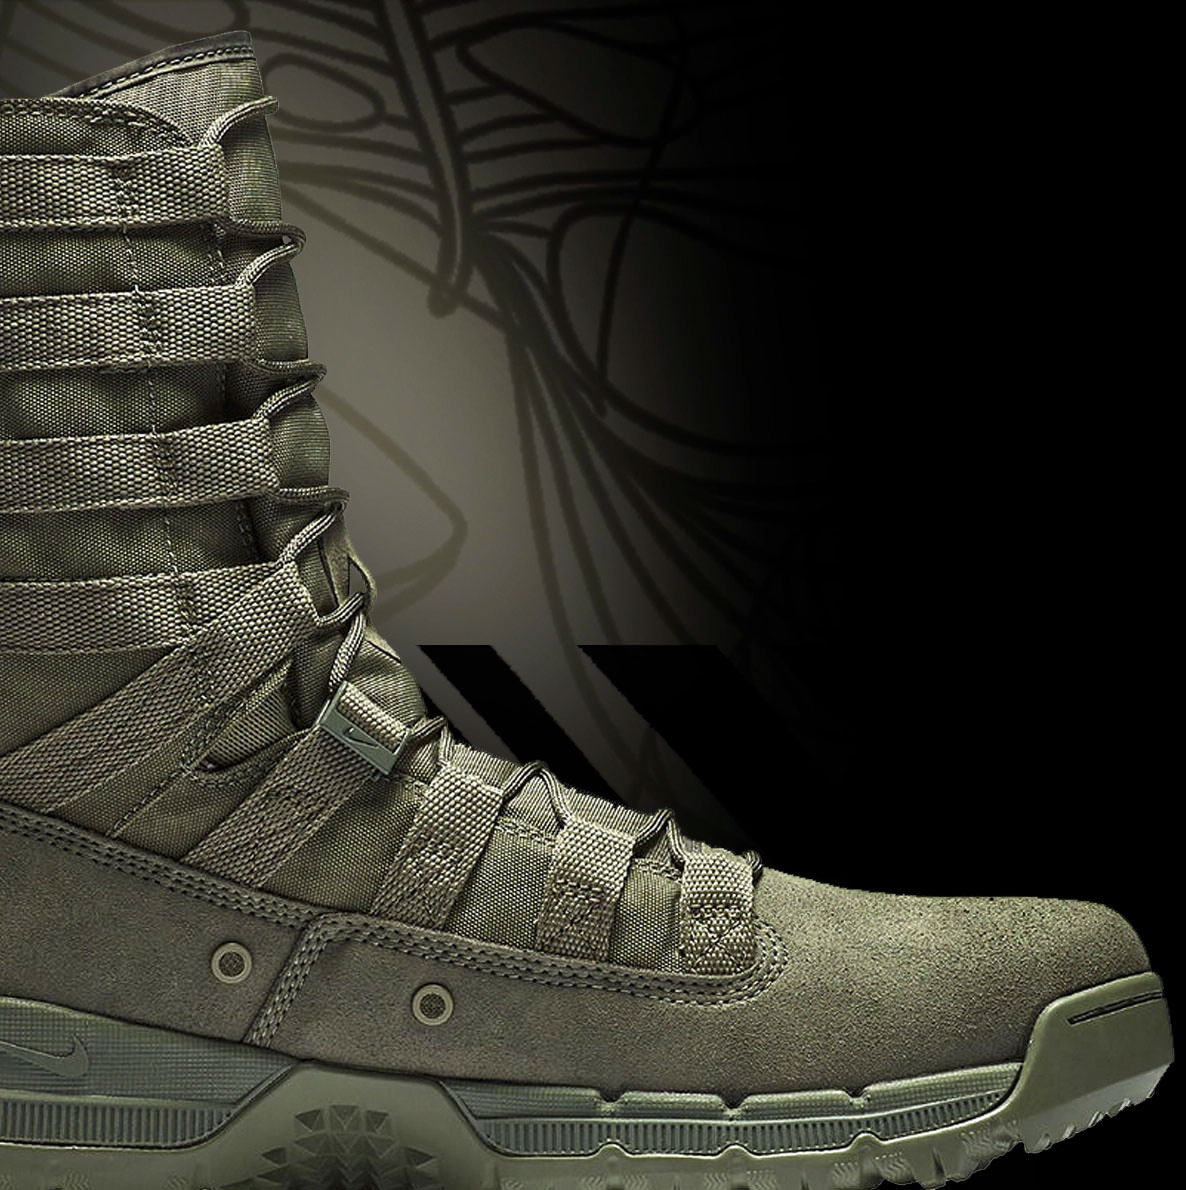 Sage Boots Only $29.99!